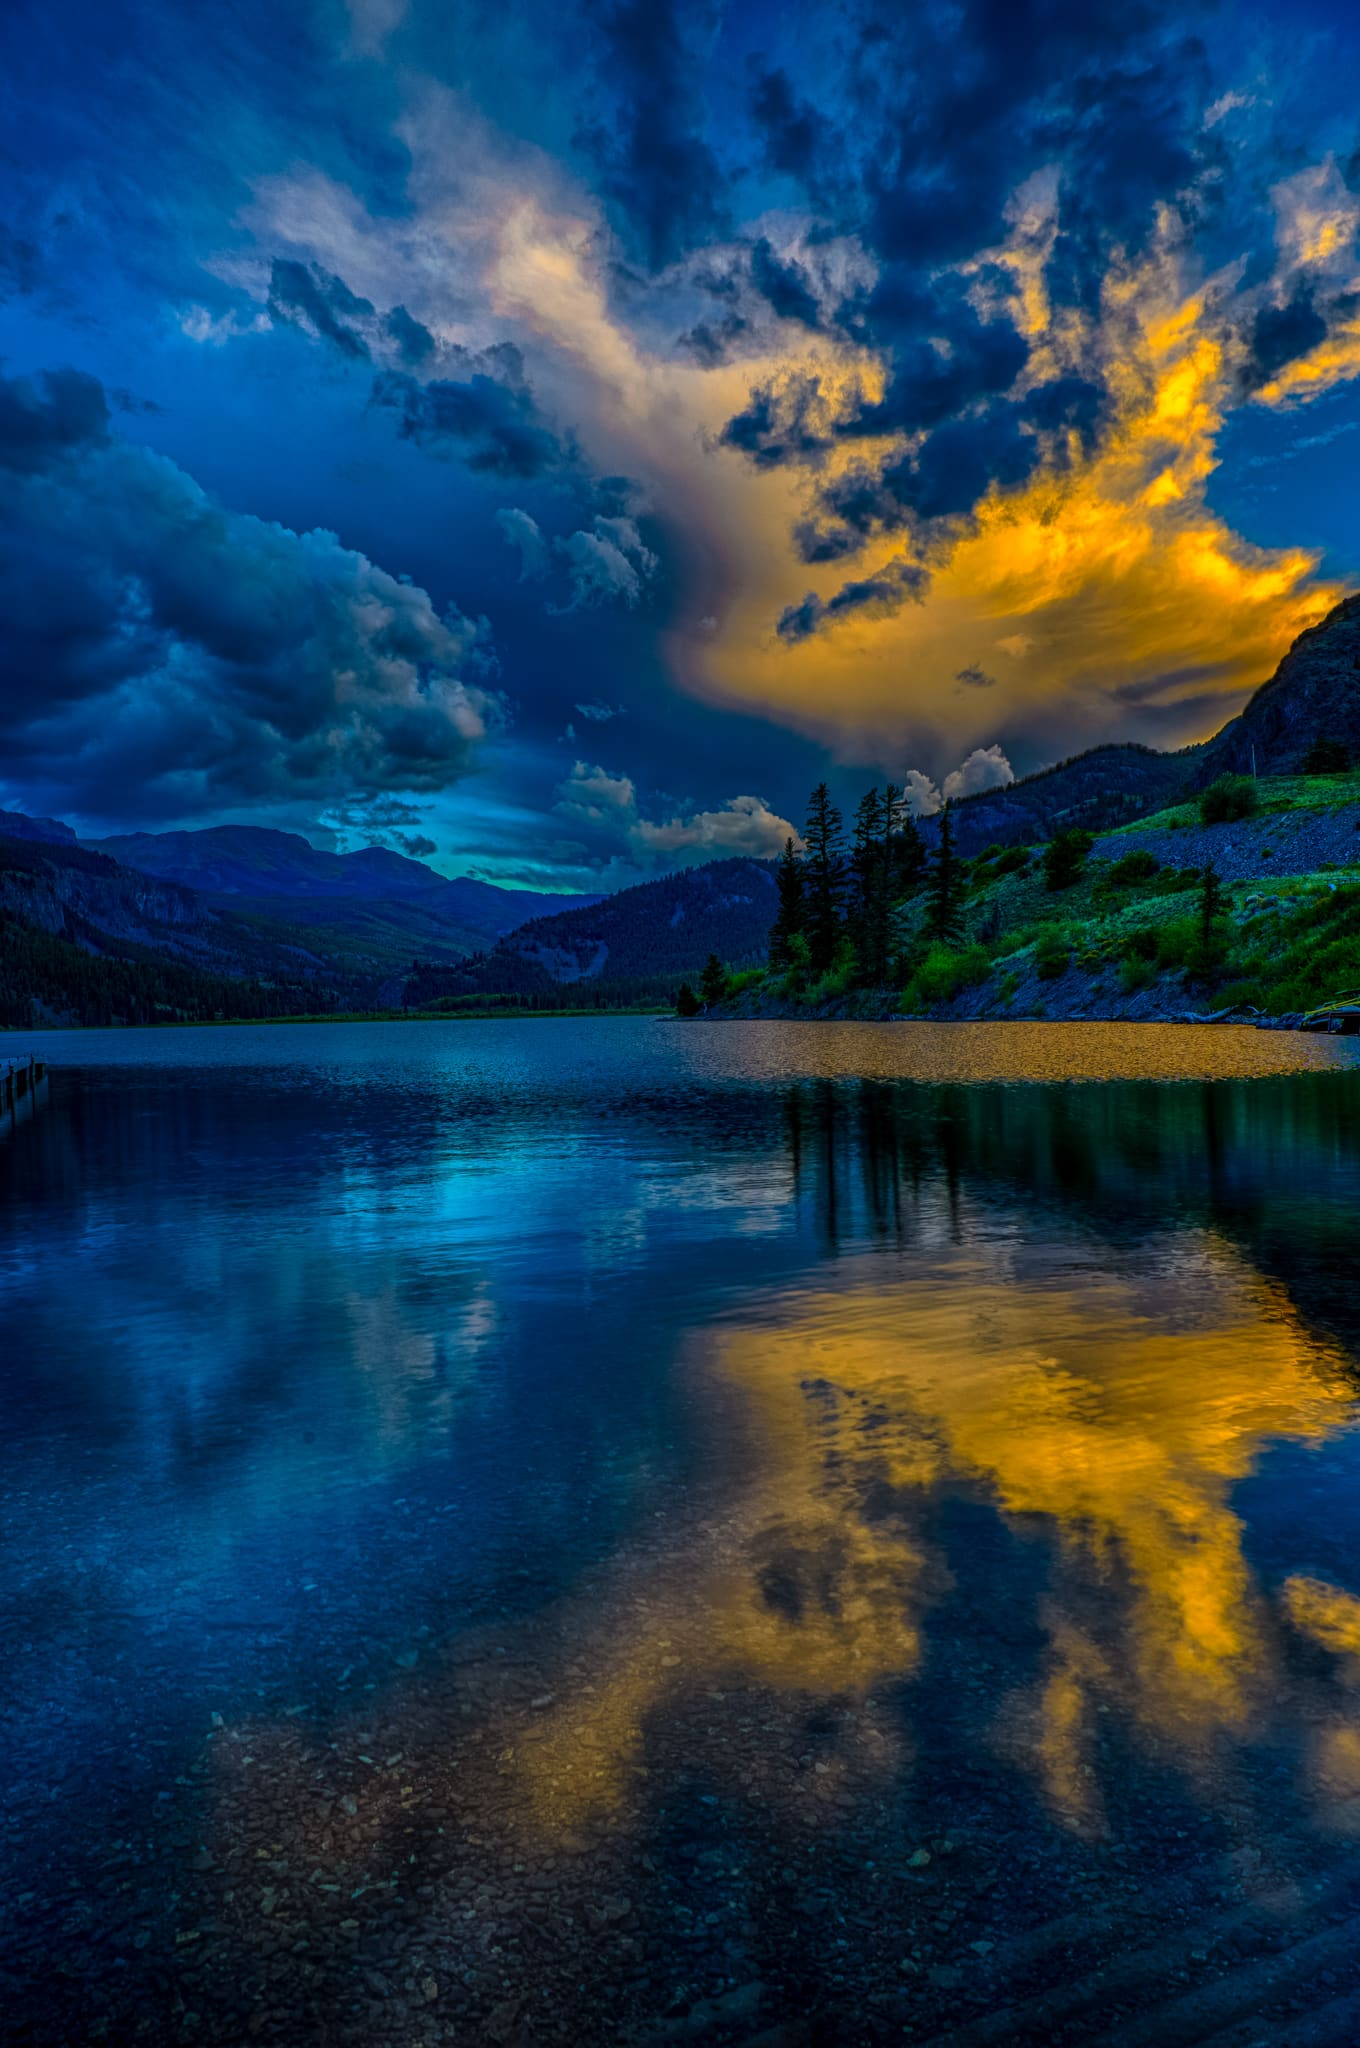 The last light of sunset illuminating a cloud is reflected the the water of Lake San Cristobal near Lake City, Colorado.